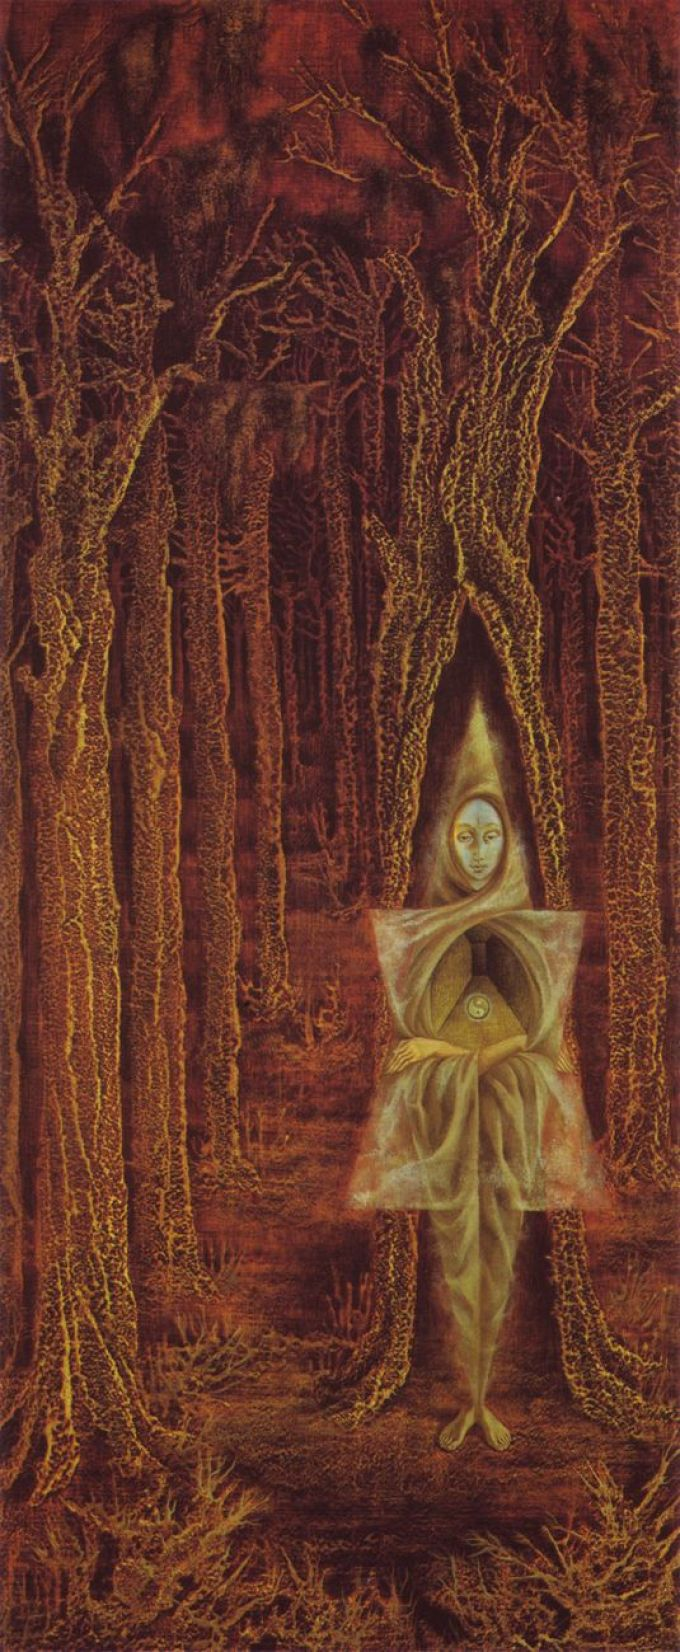 Remedios Varo, The Hermit, 1955